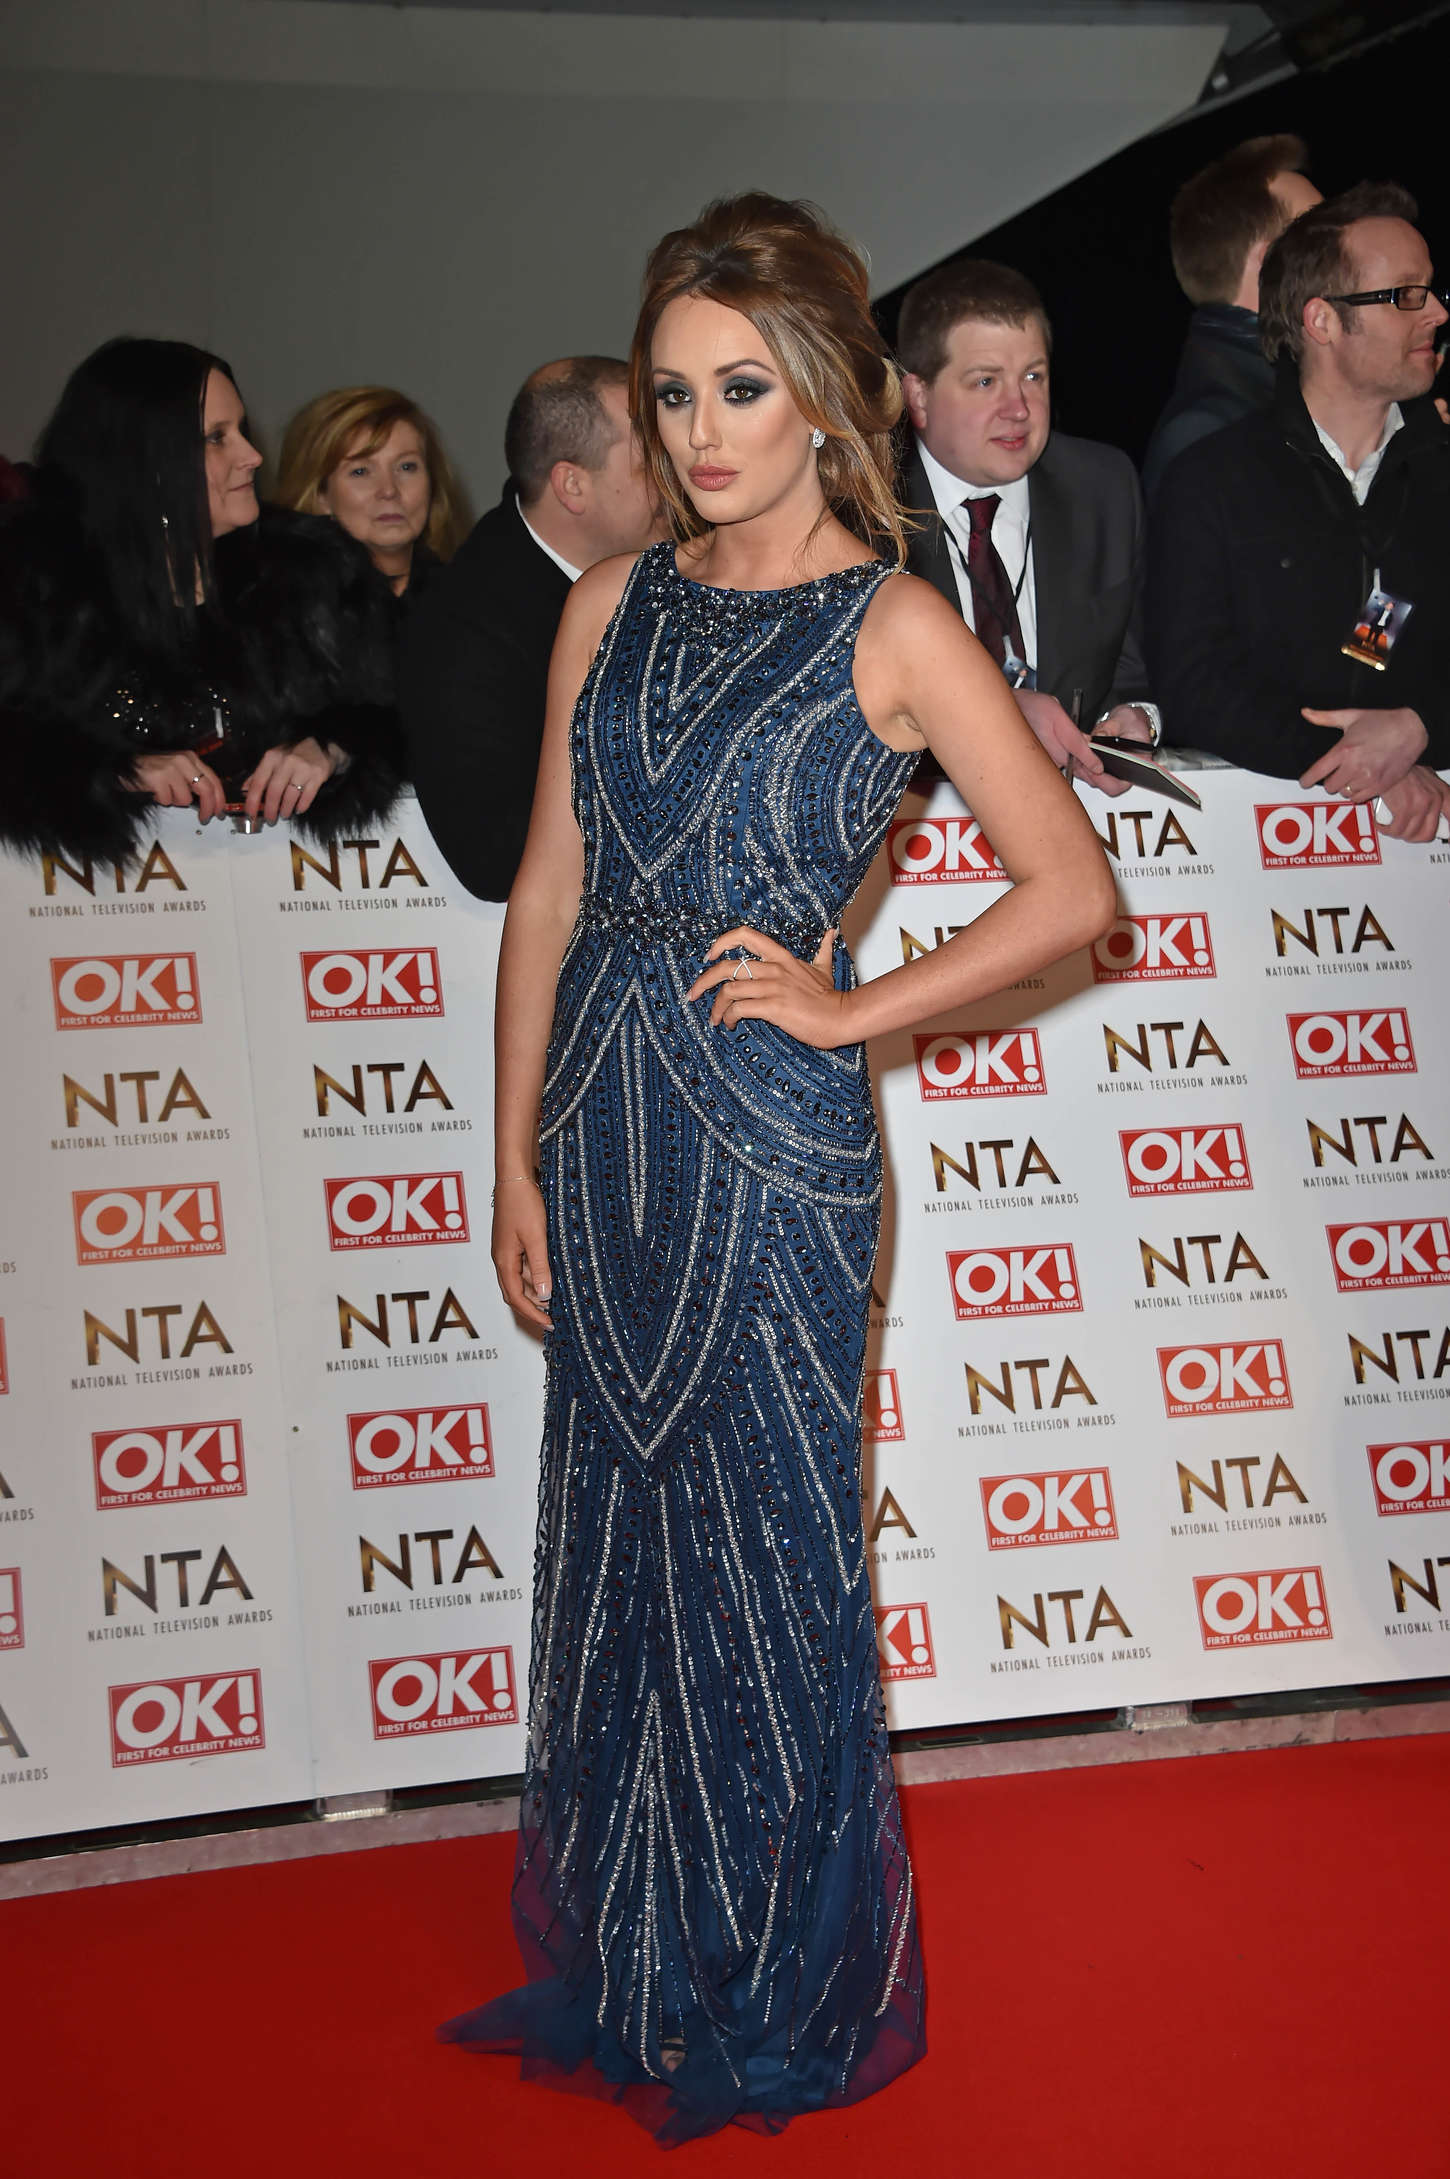 Charlotte Crosby National Television Awards in London